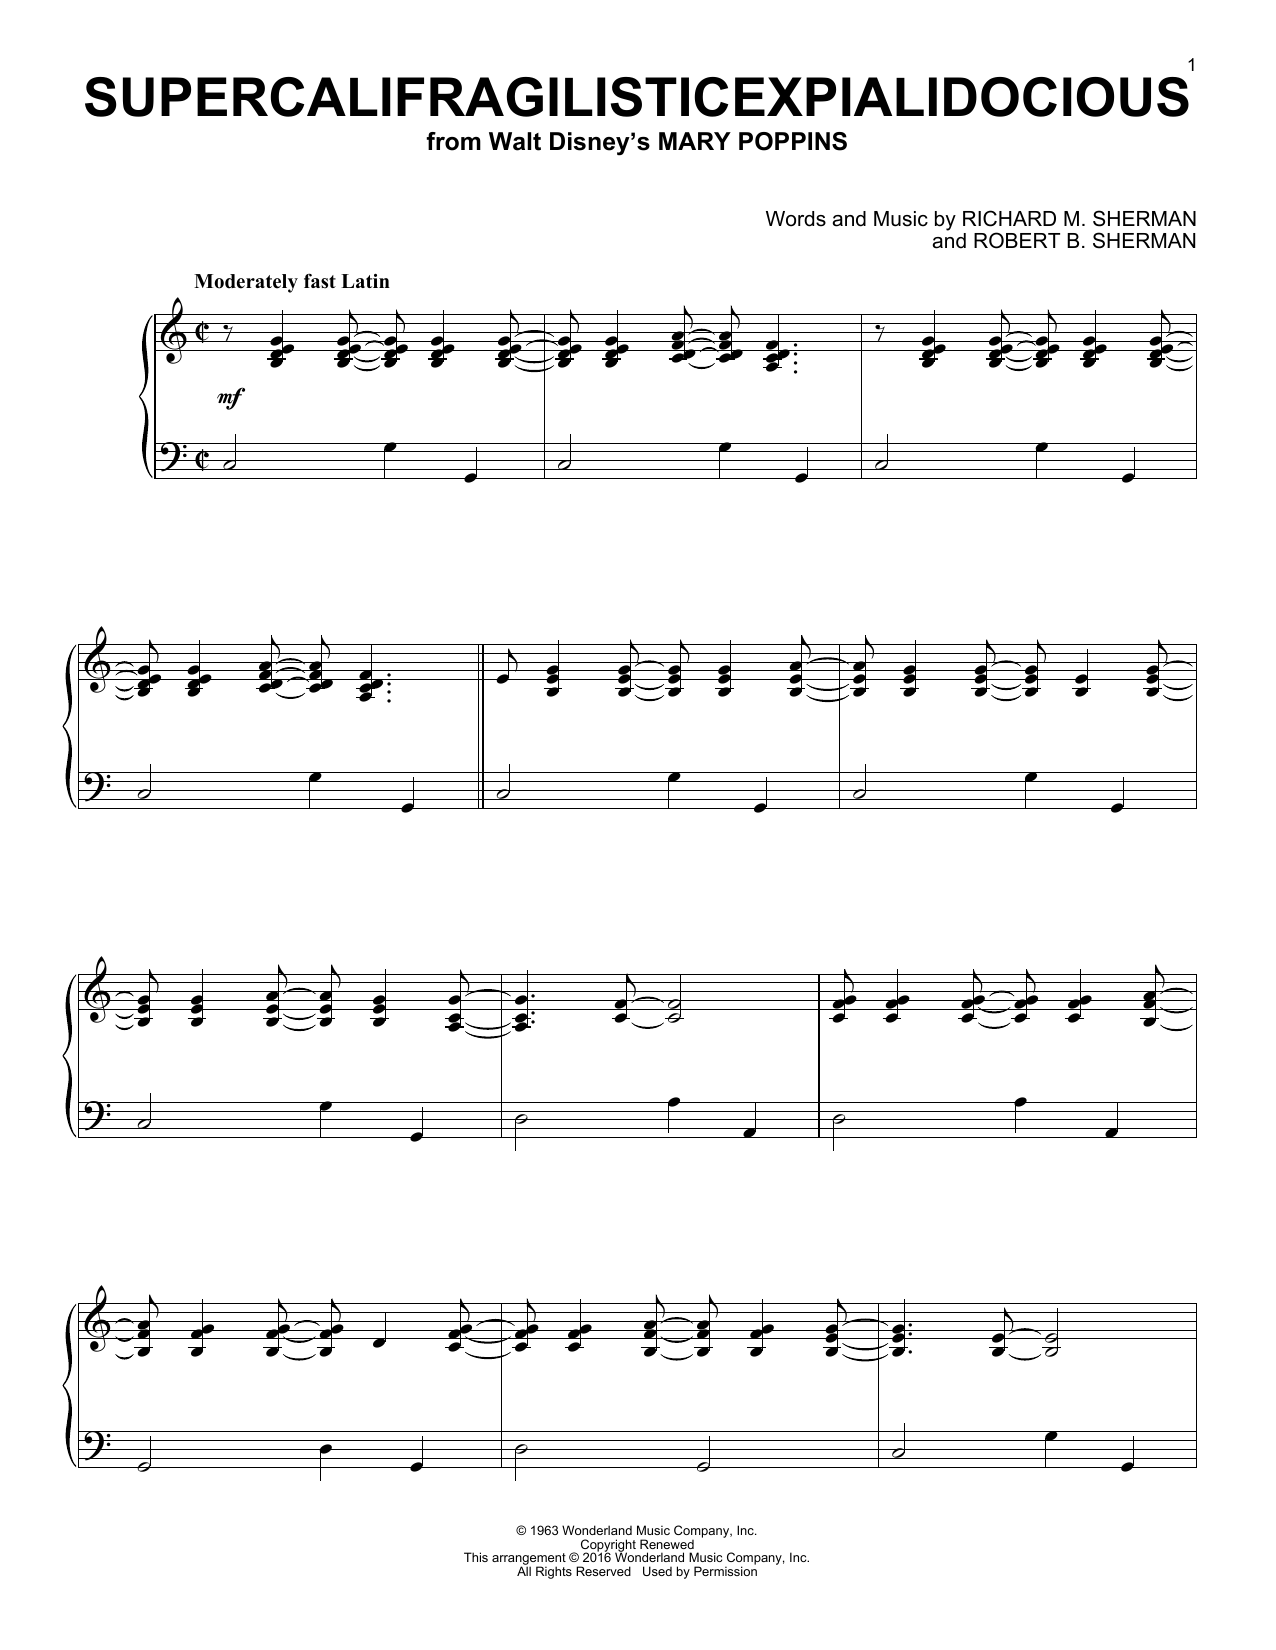 Supercalifragilisticexpialidocious [Jazz version] (from Mary Poppins) (Piano Solo)